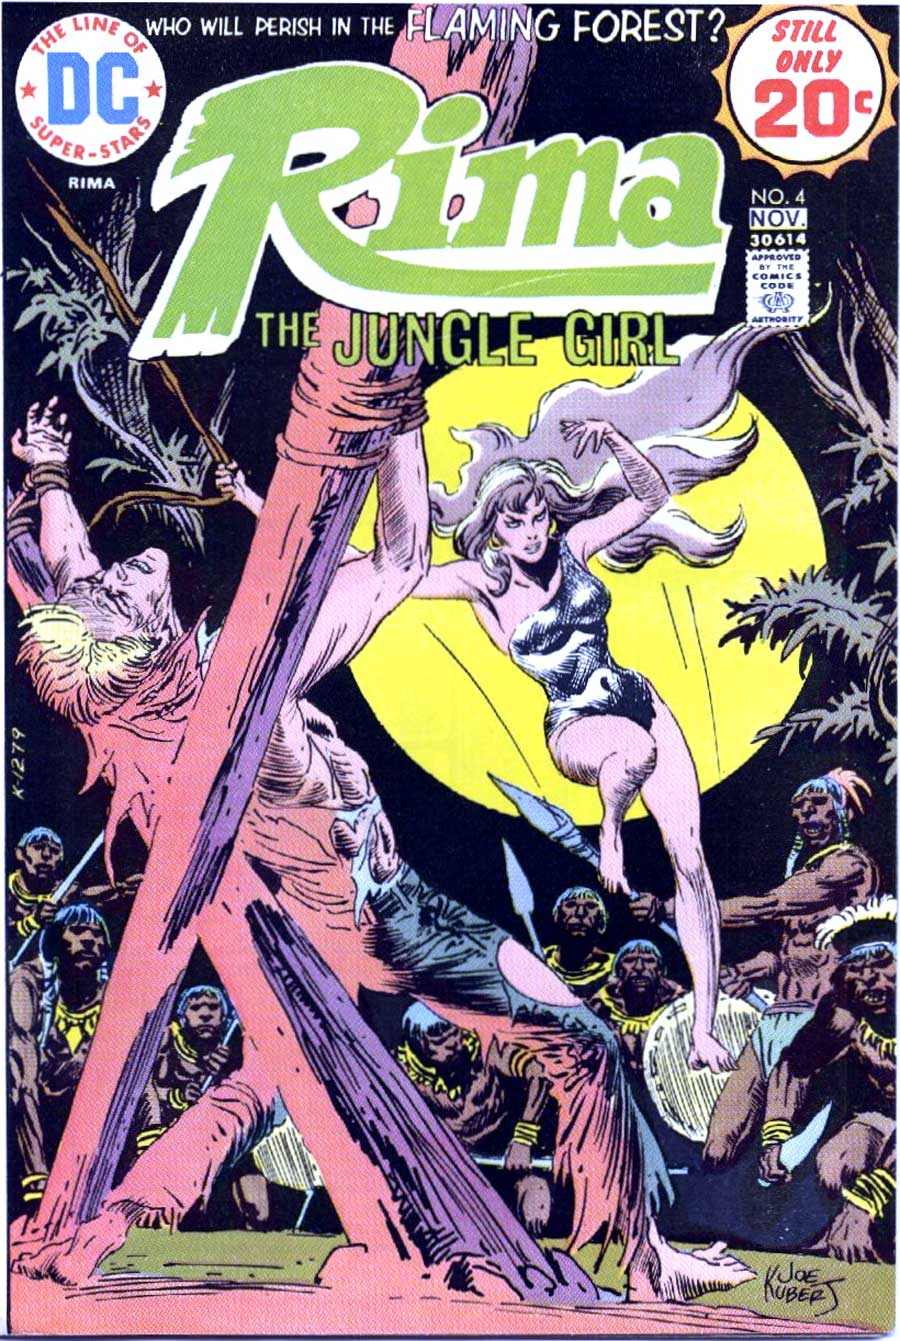 Rima the Jungle Girl v1 #4 dc bronze age comic book cover art by Joe Kubert